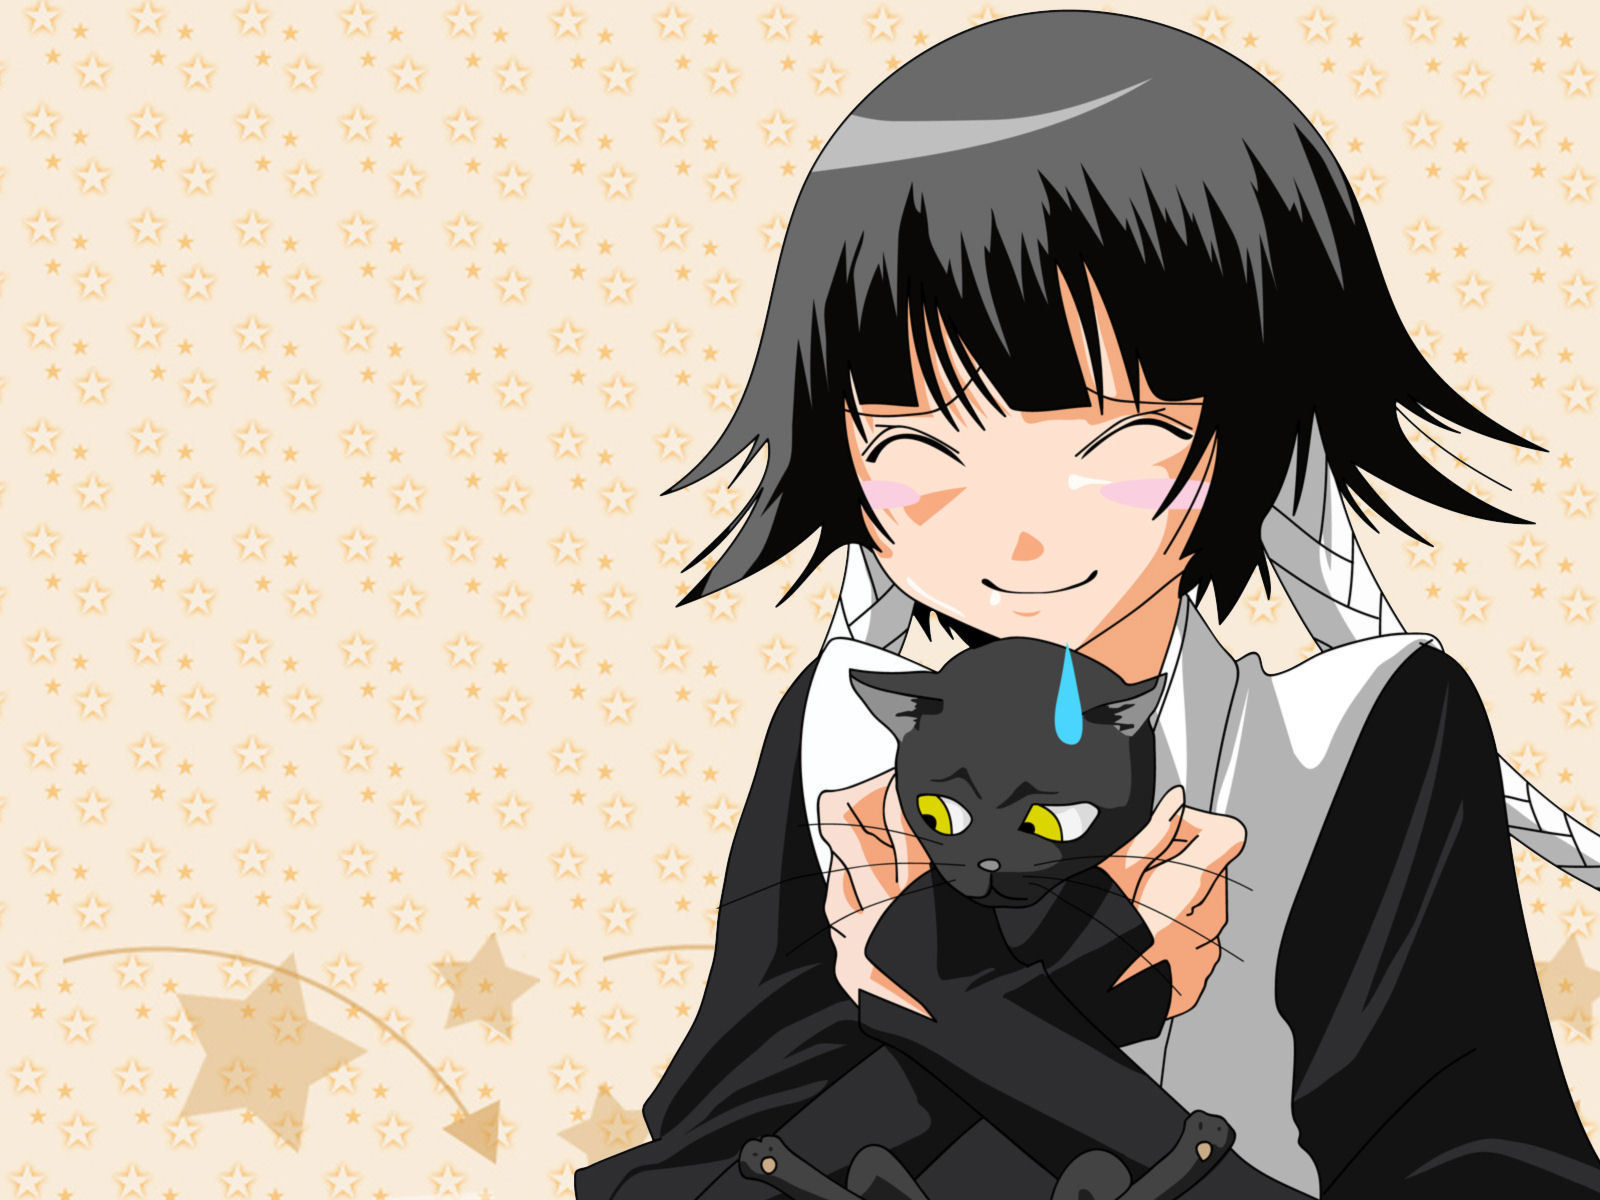 Soi fon bleach anime wallpaper 6906002 fanpop for What is the soi